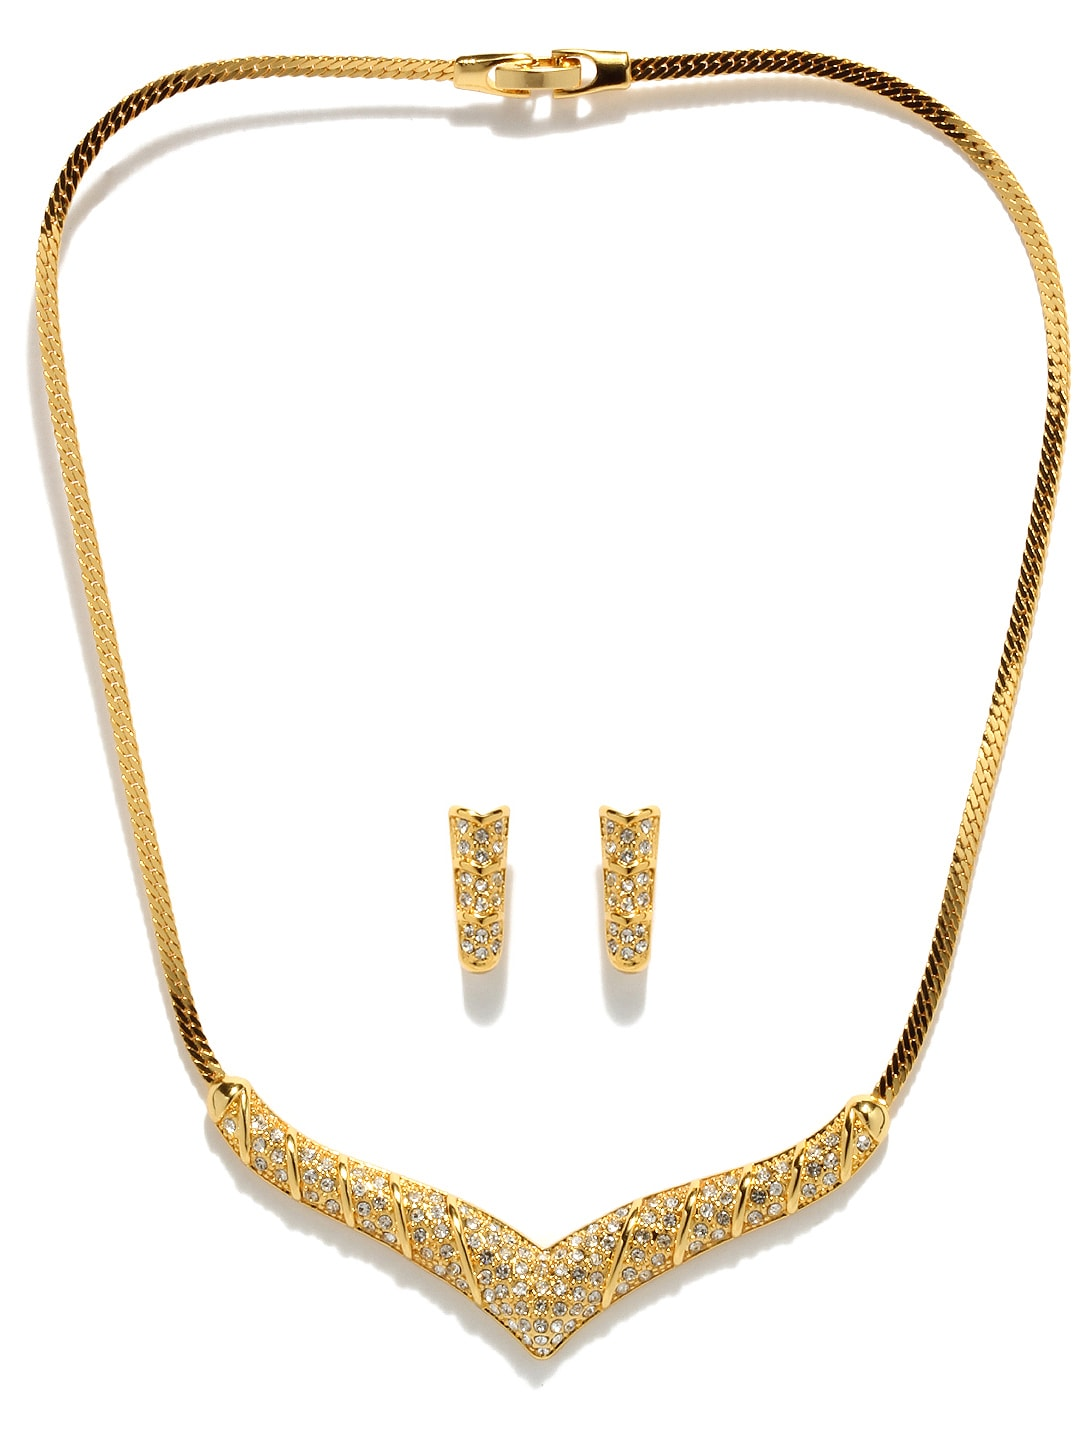 24 carat gold jewelry buy estelle 24 carat gold plated swarovski crystals 4015